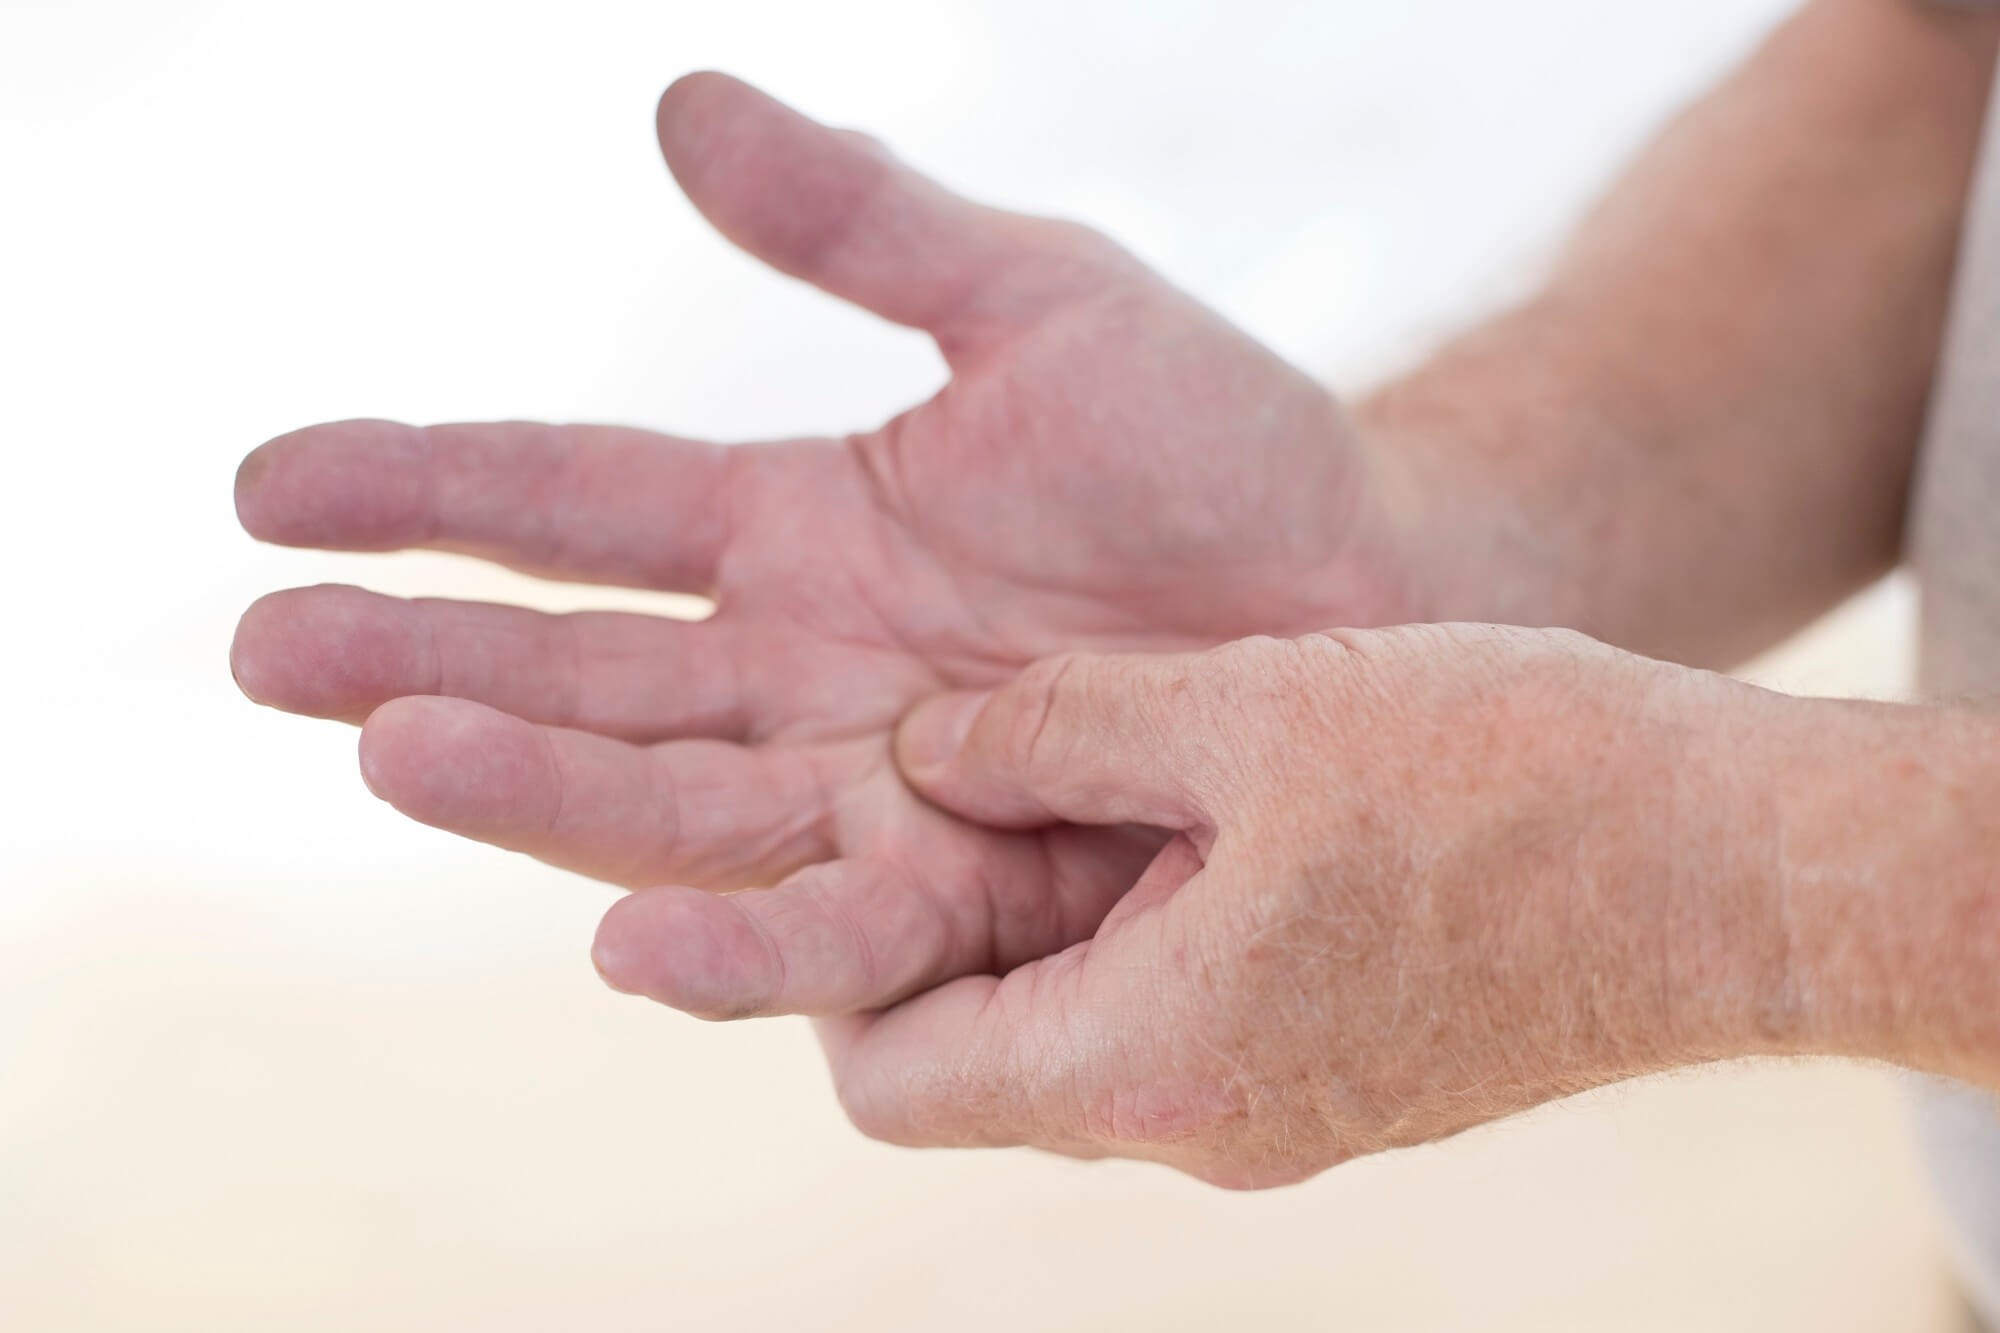 CDC: About 1 in 3 Adults With Prediabetes Has Arthritis